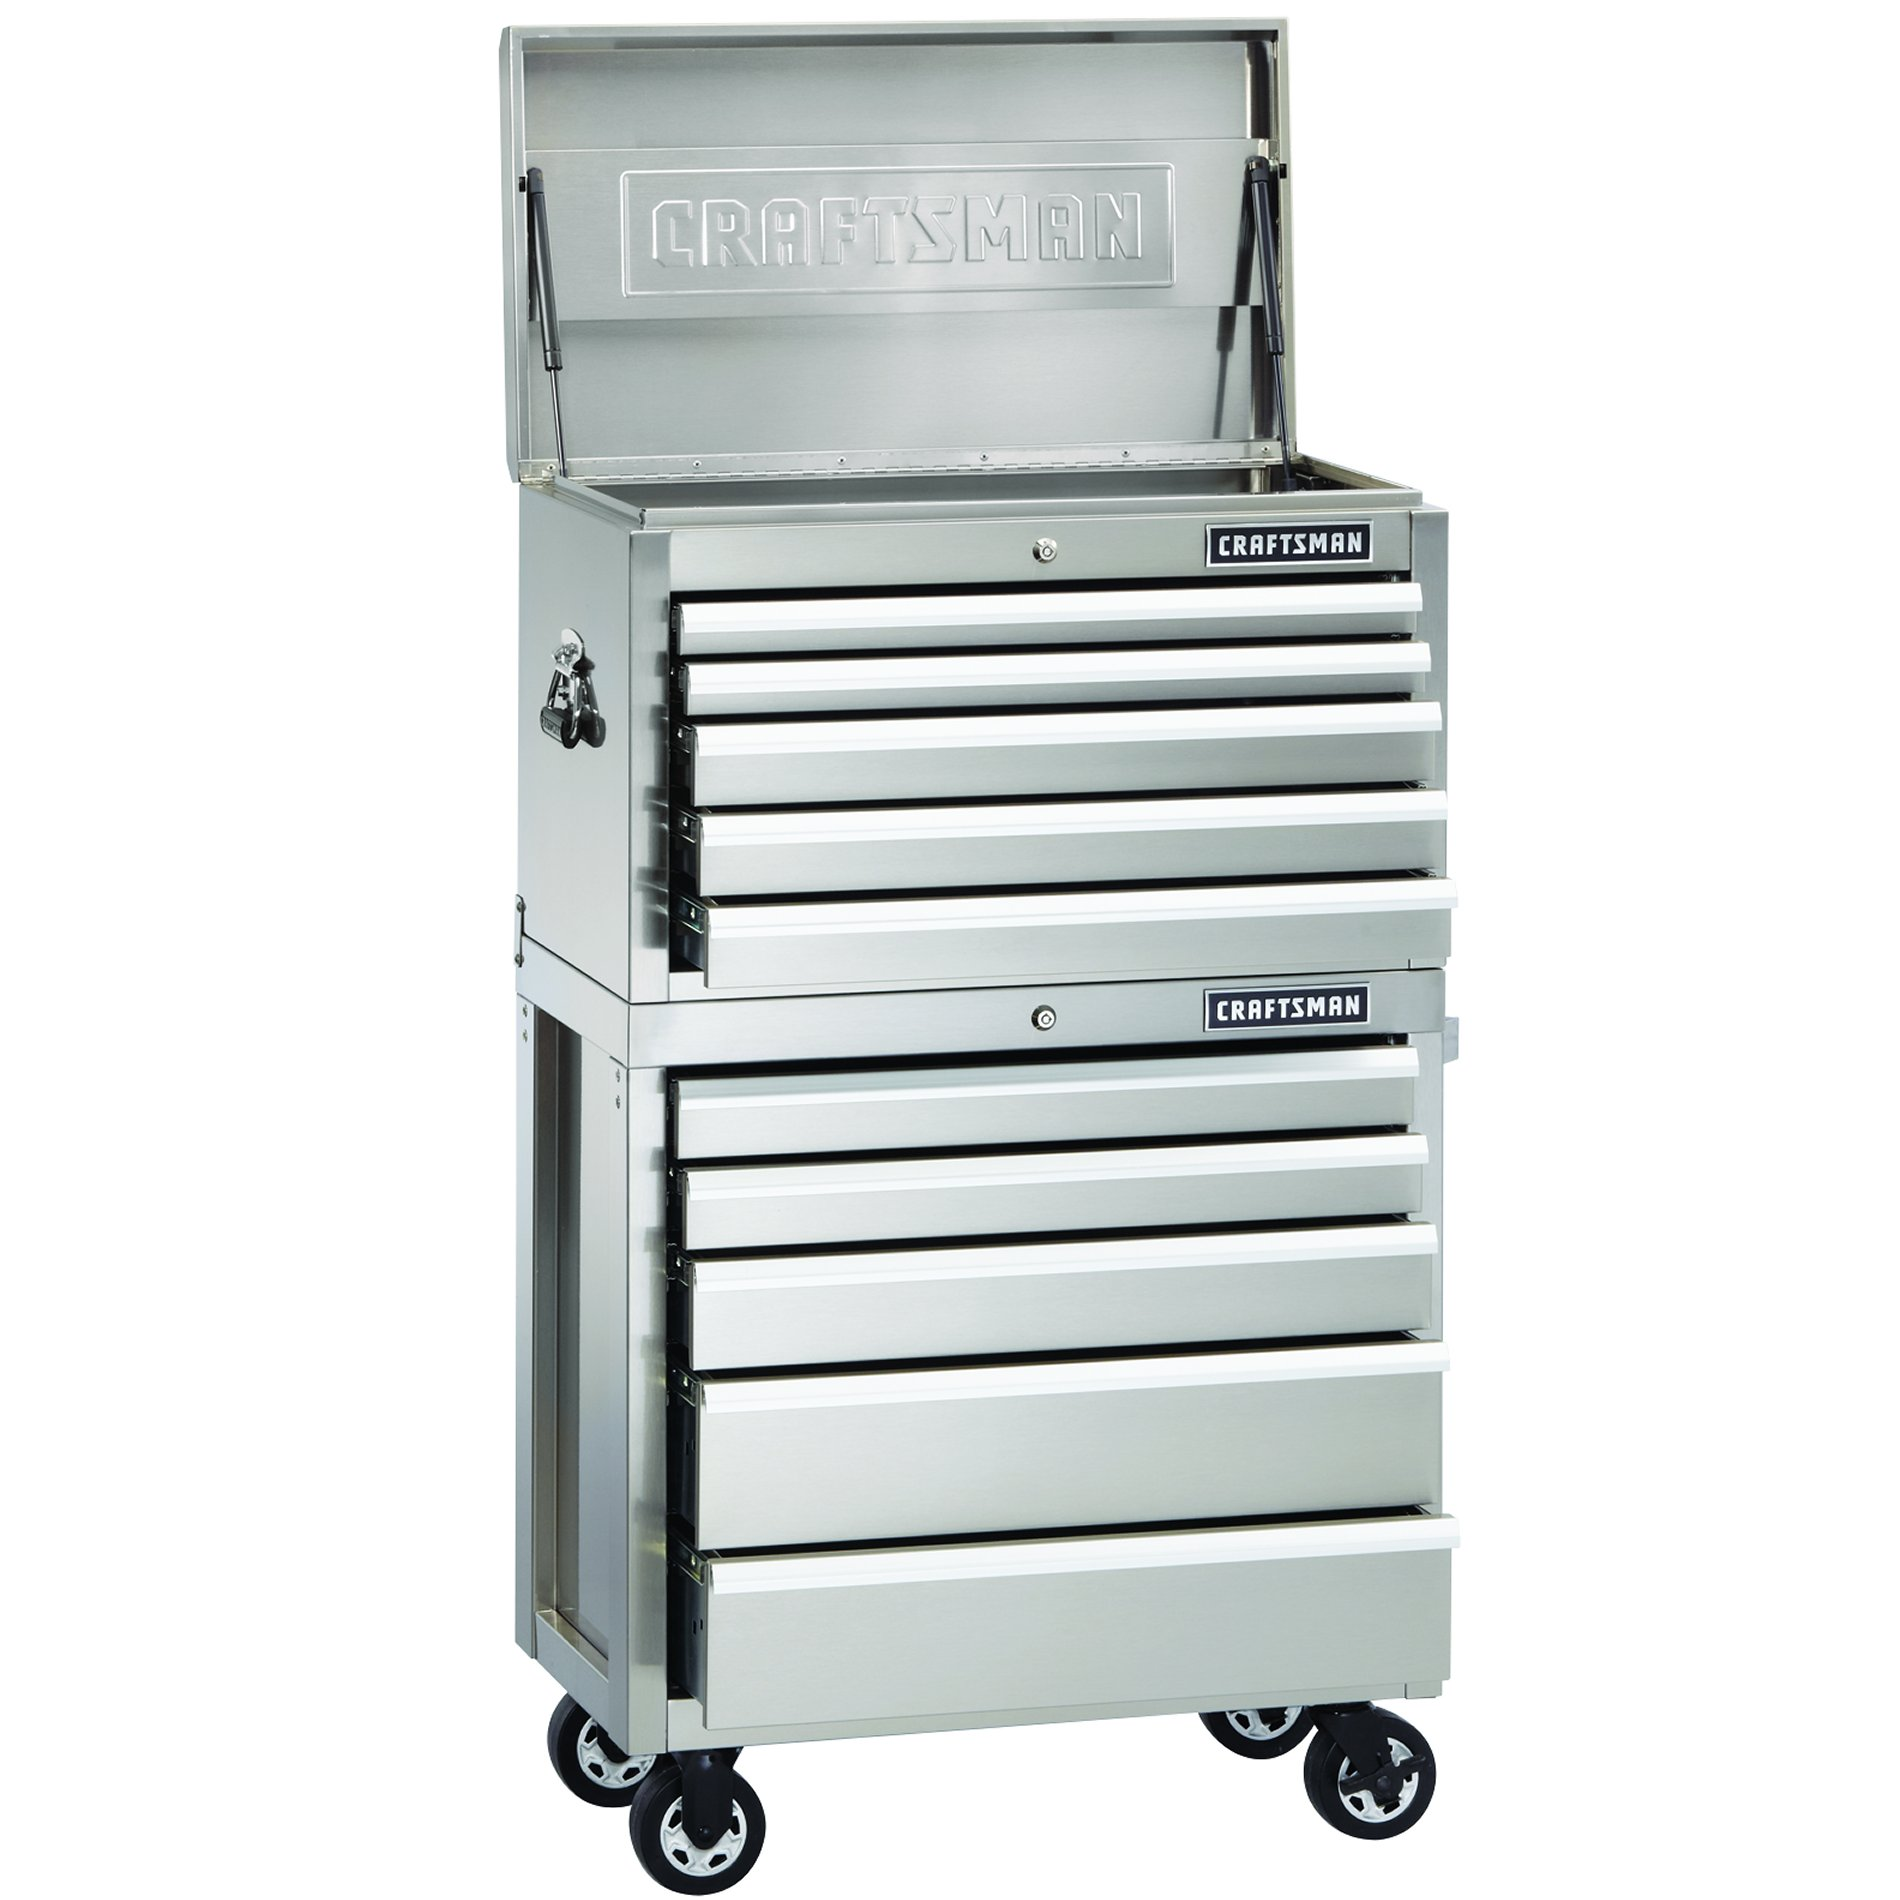 Craftsman 32-Inch 5-Drawer Premium Heavy-Duty Rolling Cabinet - Stainless Steel